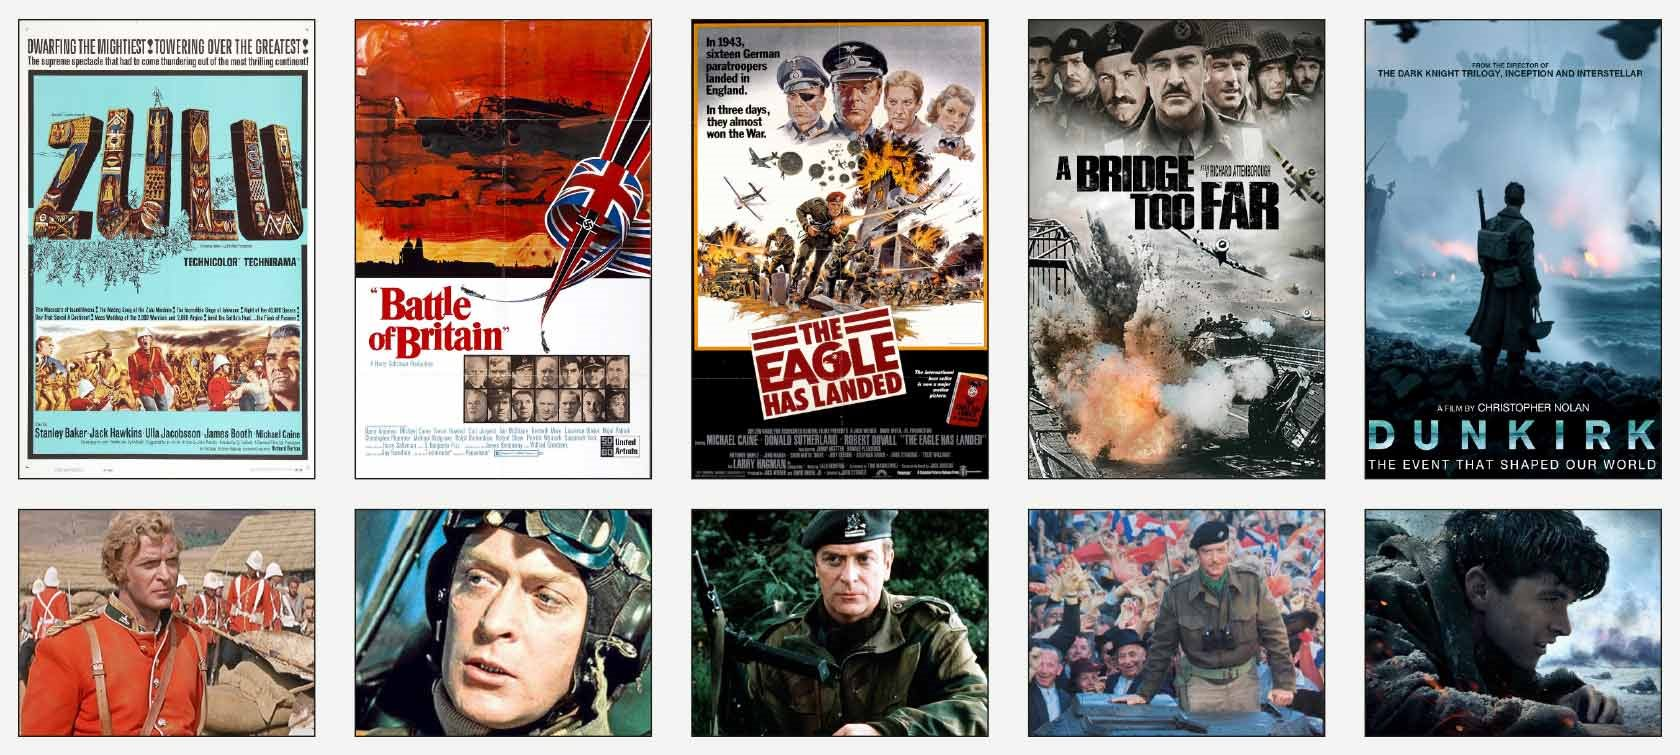 Michael Caine war films